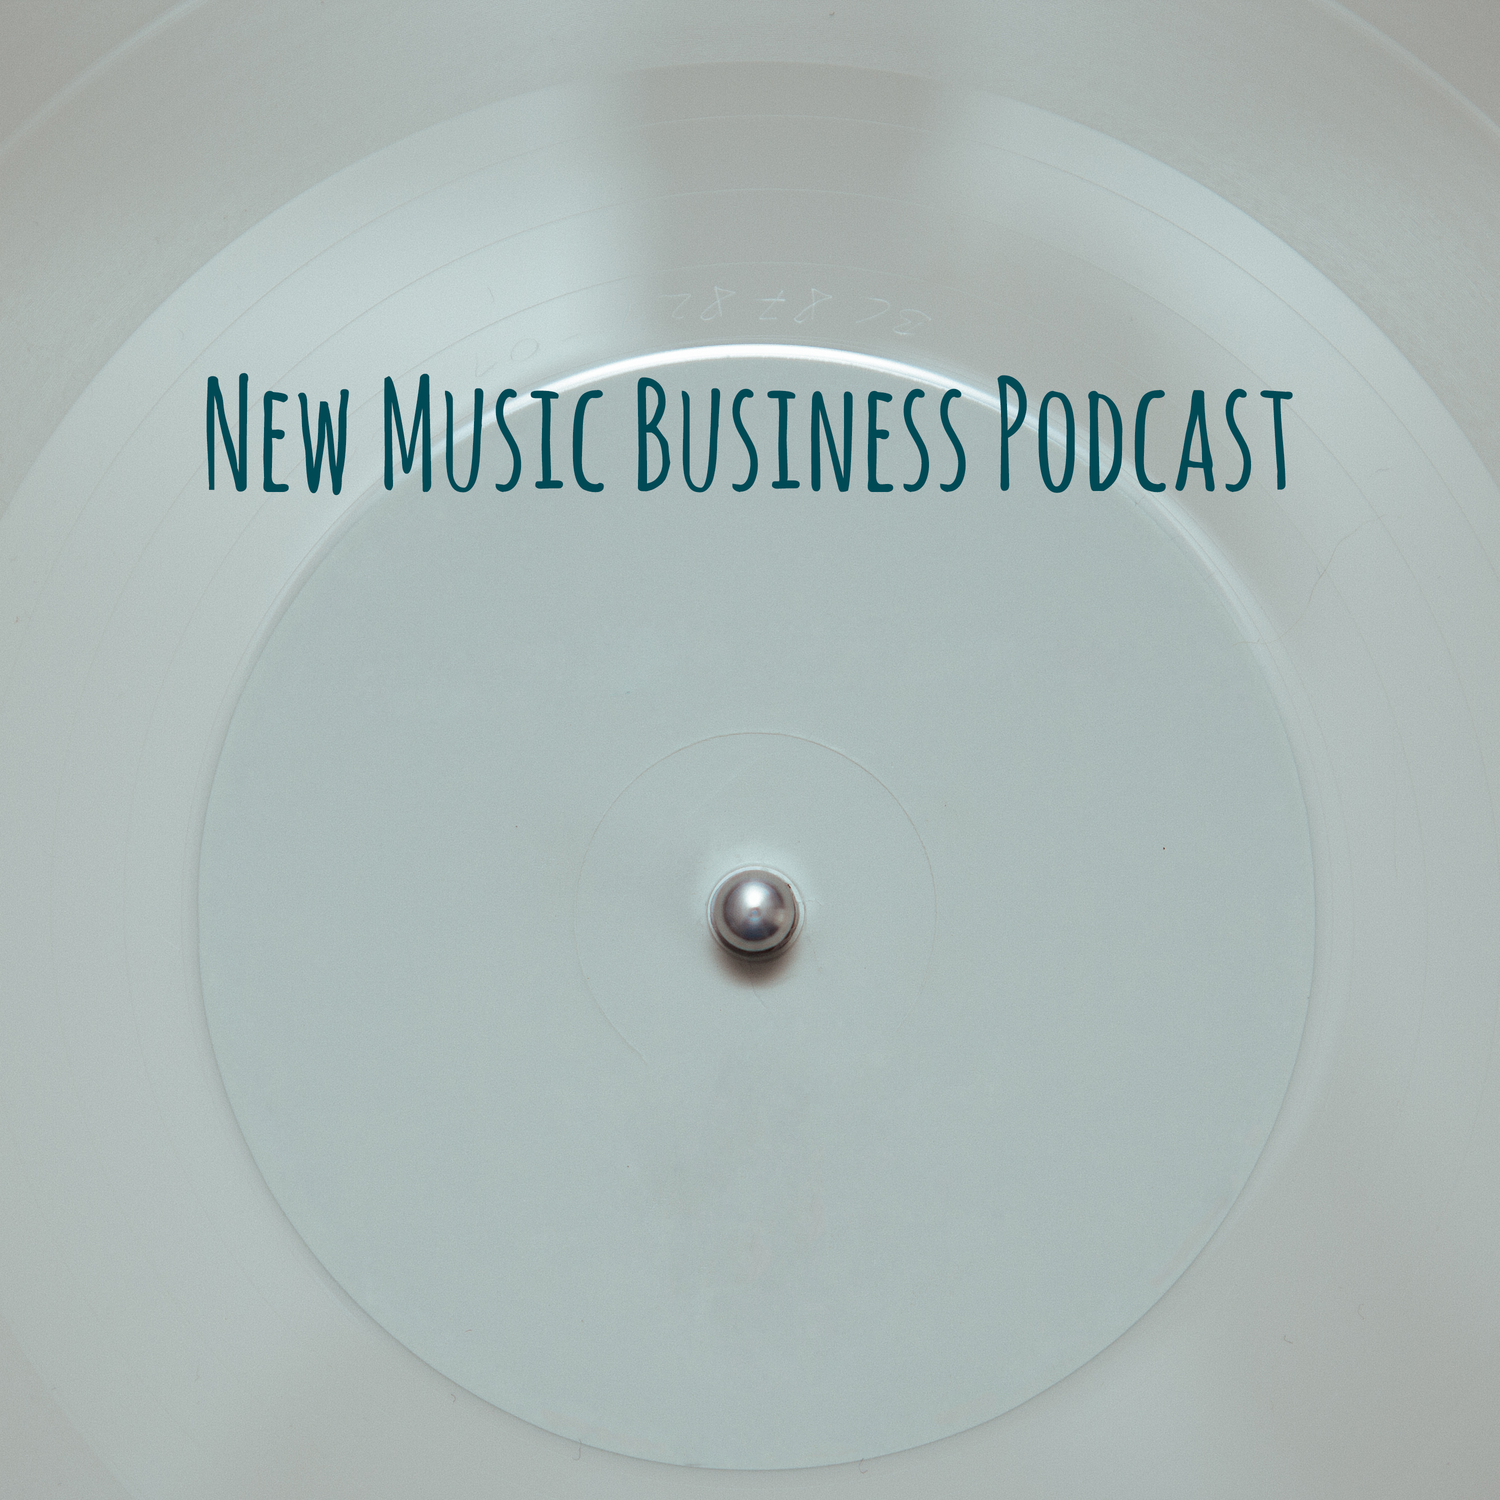 New Music Business Podcast